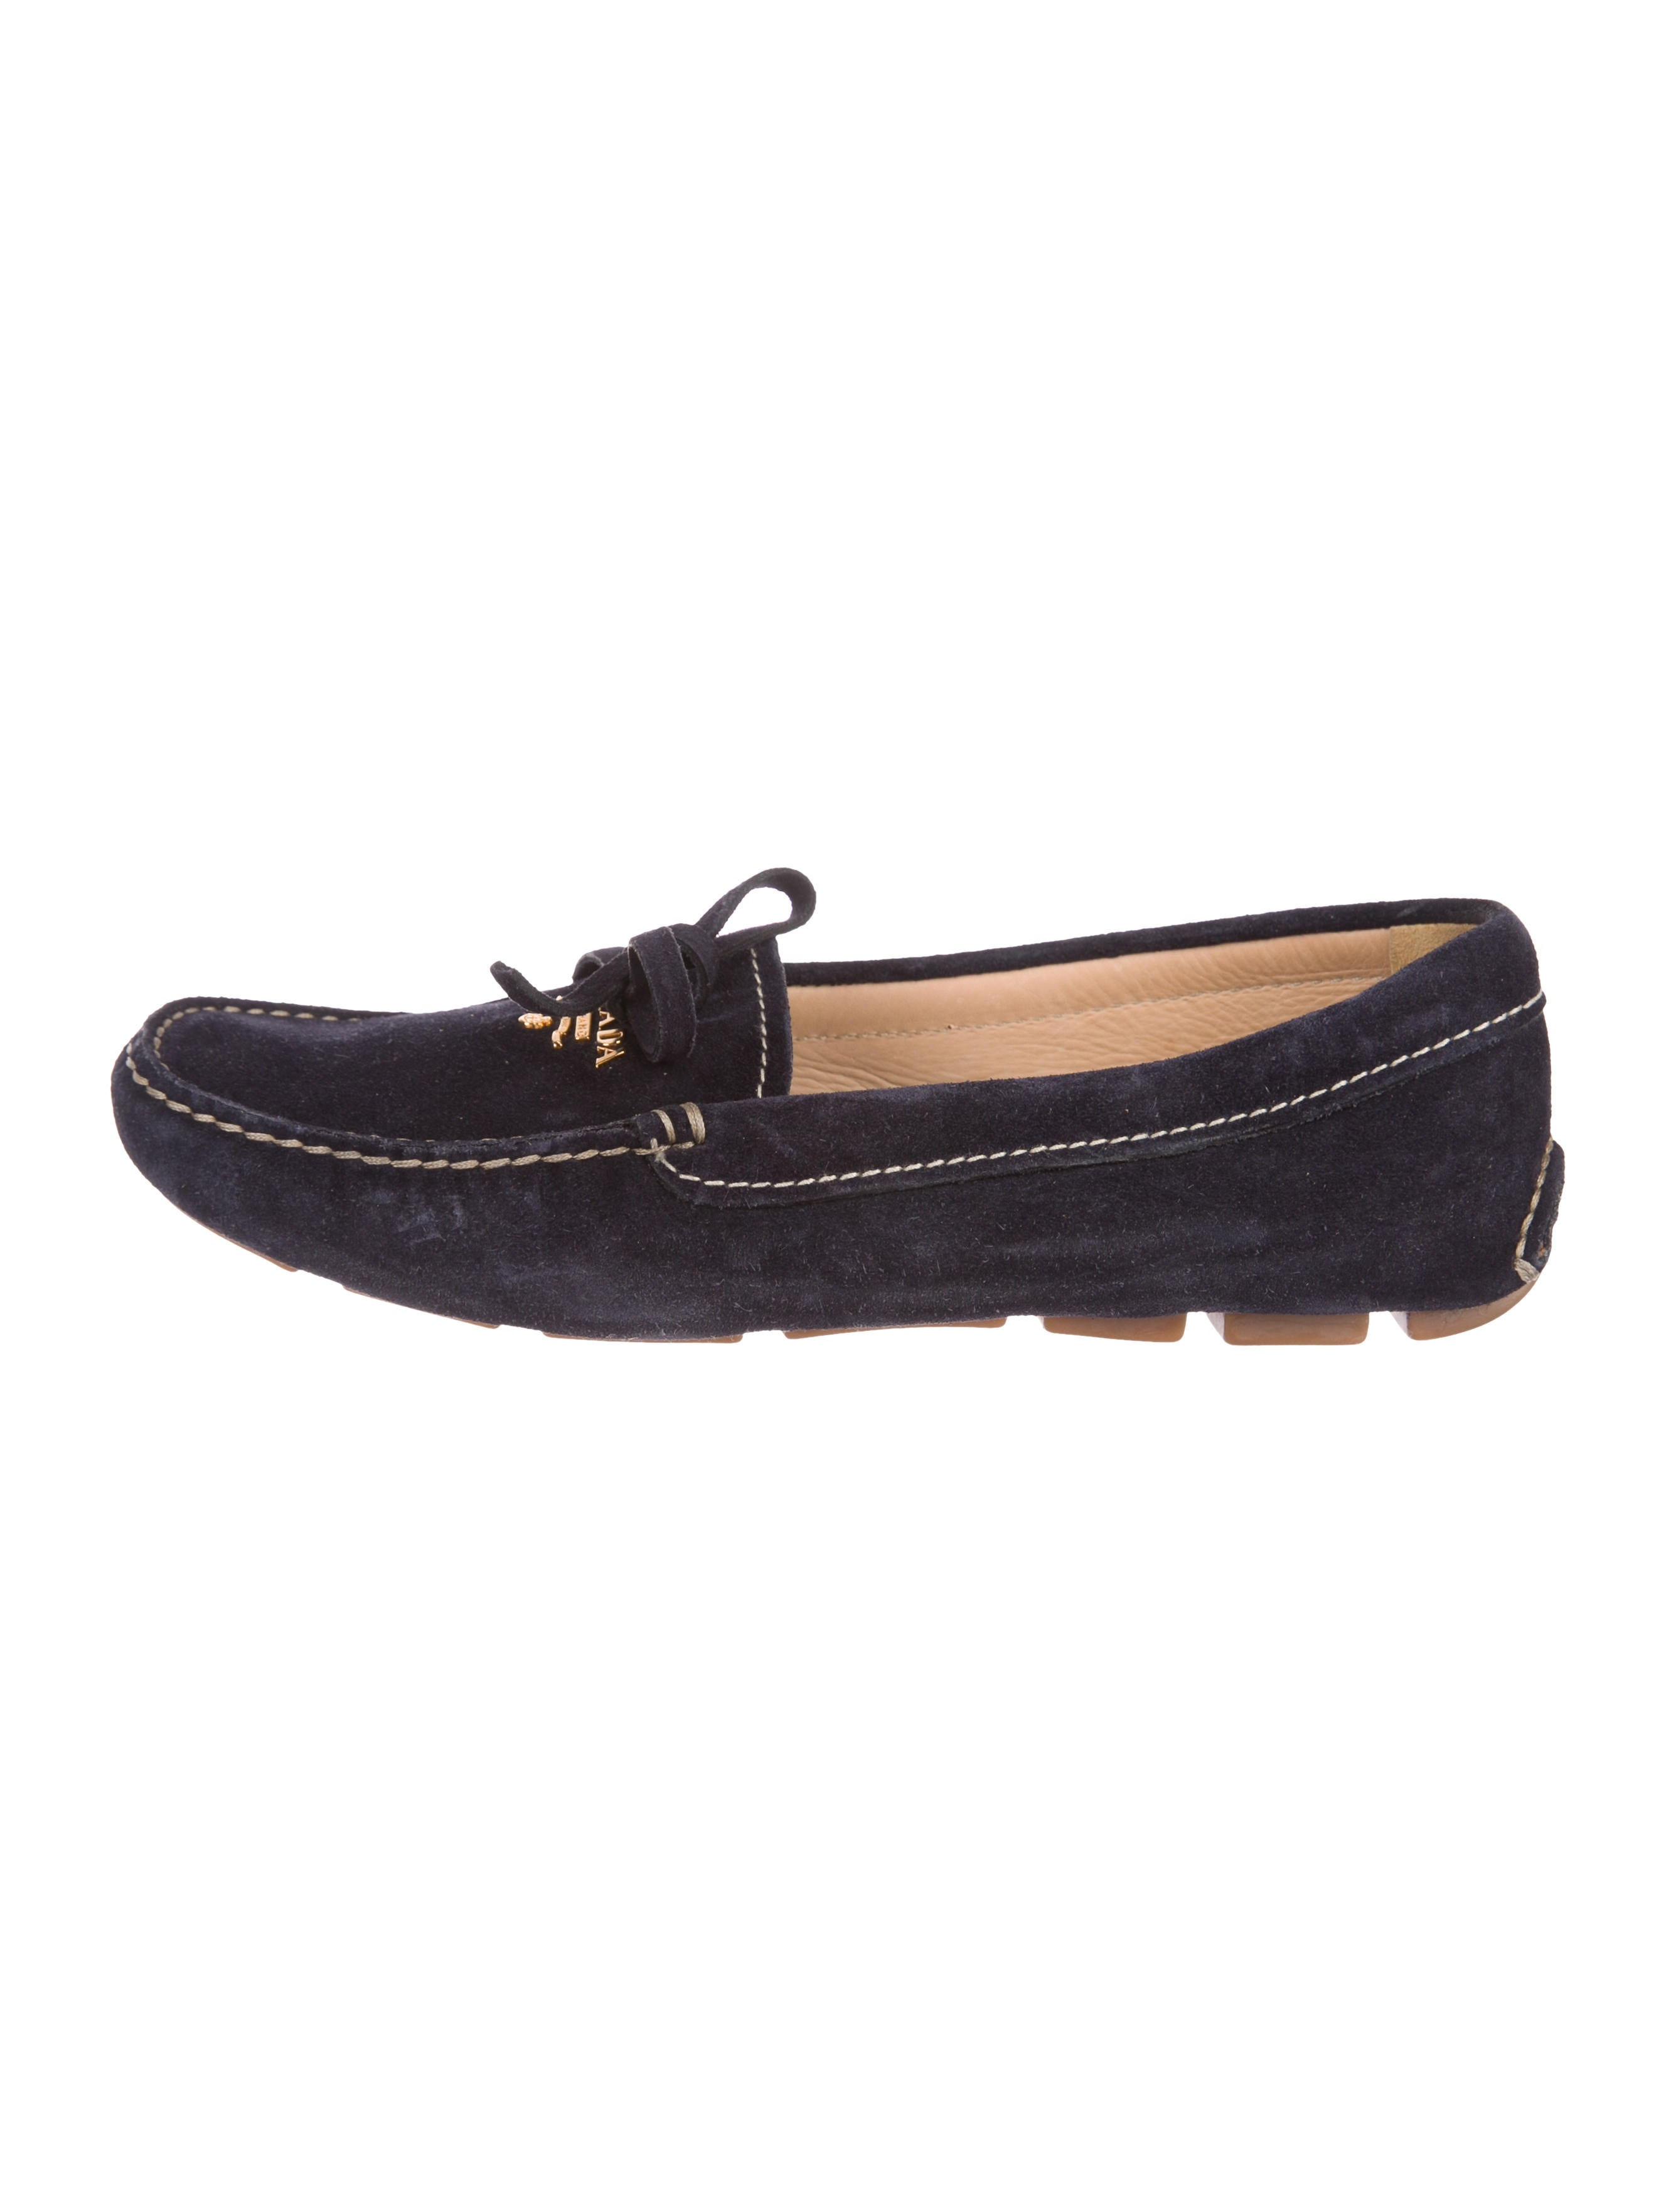 Prada Suede Square-Toe Loafers many kinds of cheap online cheap sale get authentic top quality cheap price 2PnhMXO